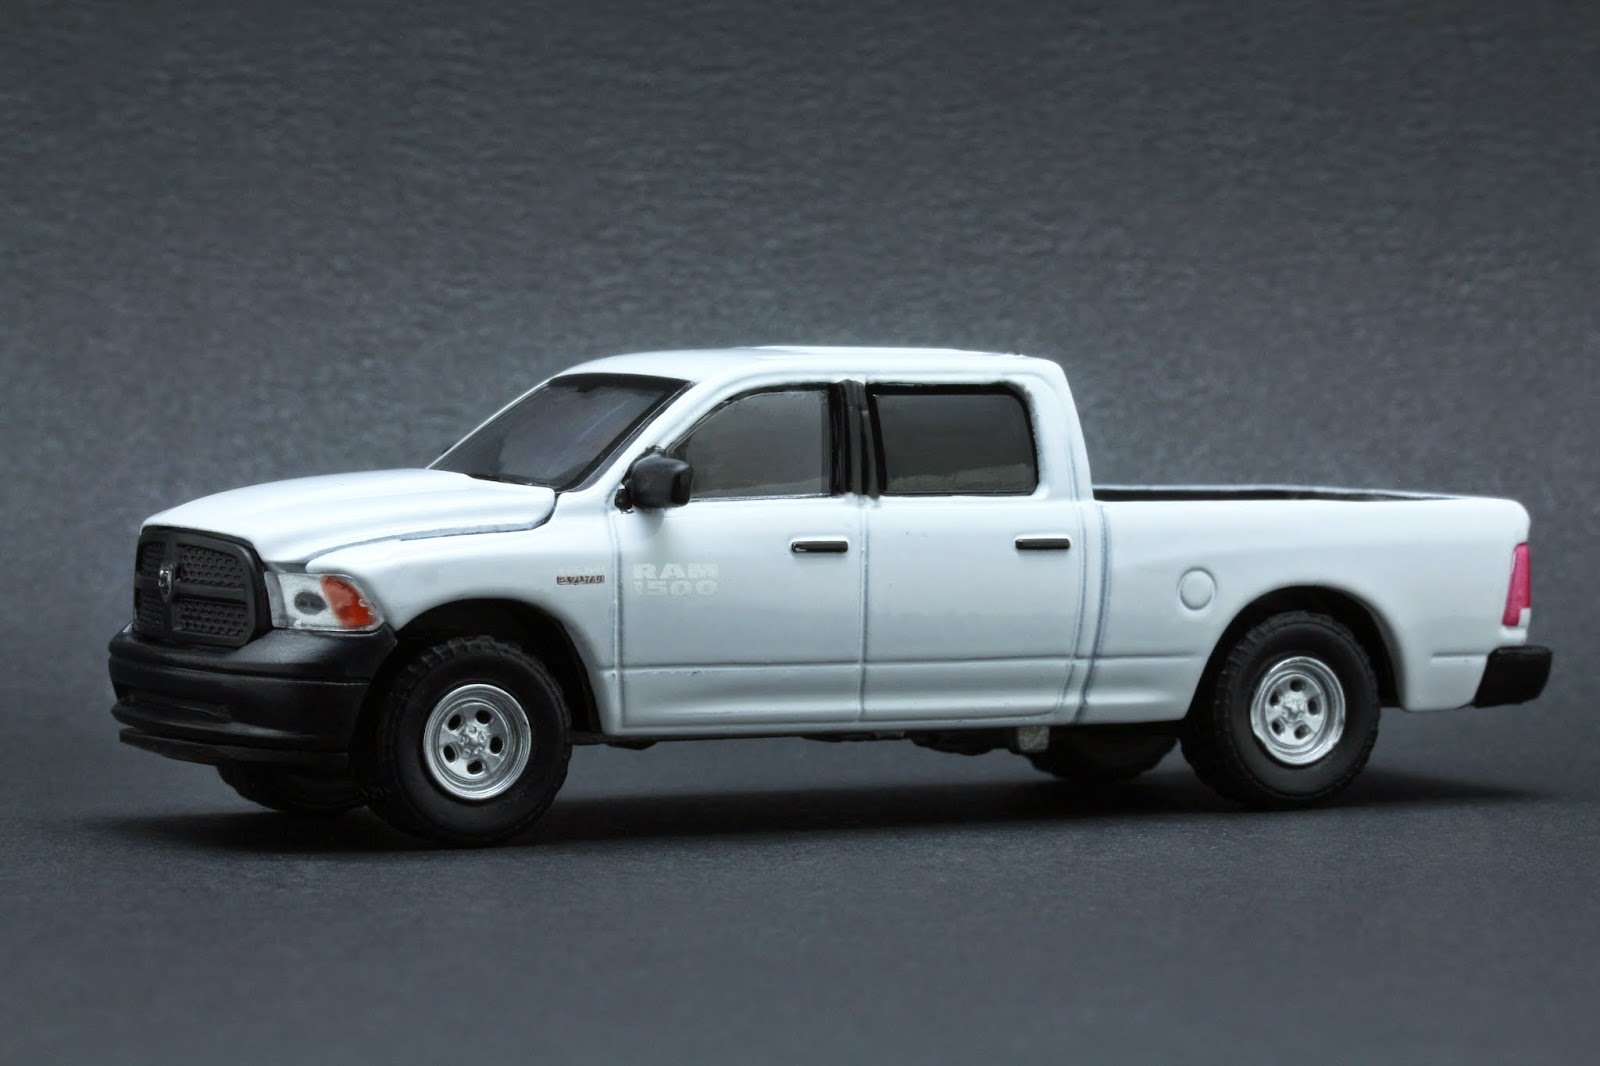 diecast hobbist 2014 dodge ram 1500 work truck. Black Bedroom Furniture Sets. Home Design Ideas